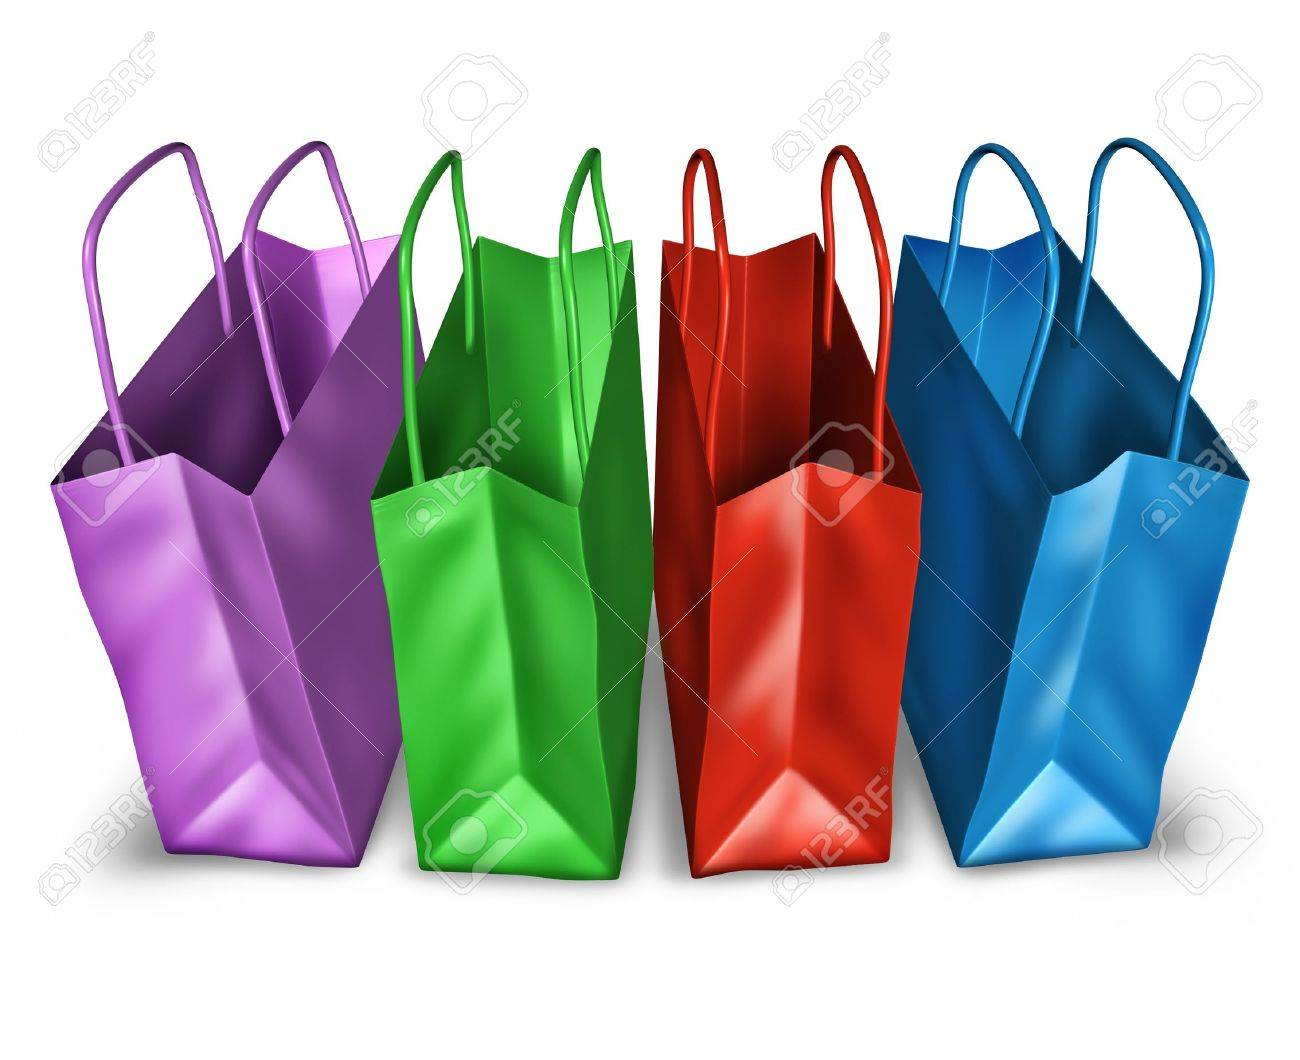 Shopping bags in a group with multi colors representing sales and retail purchases at stores and shops. Stock Photo - 10945934